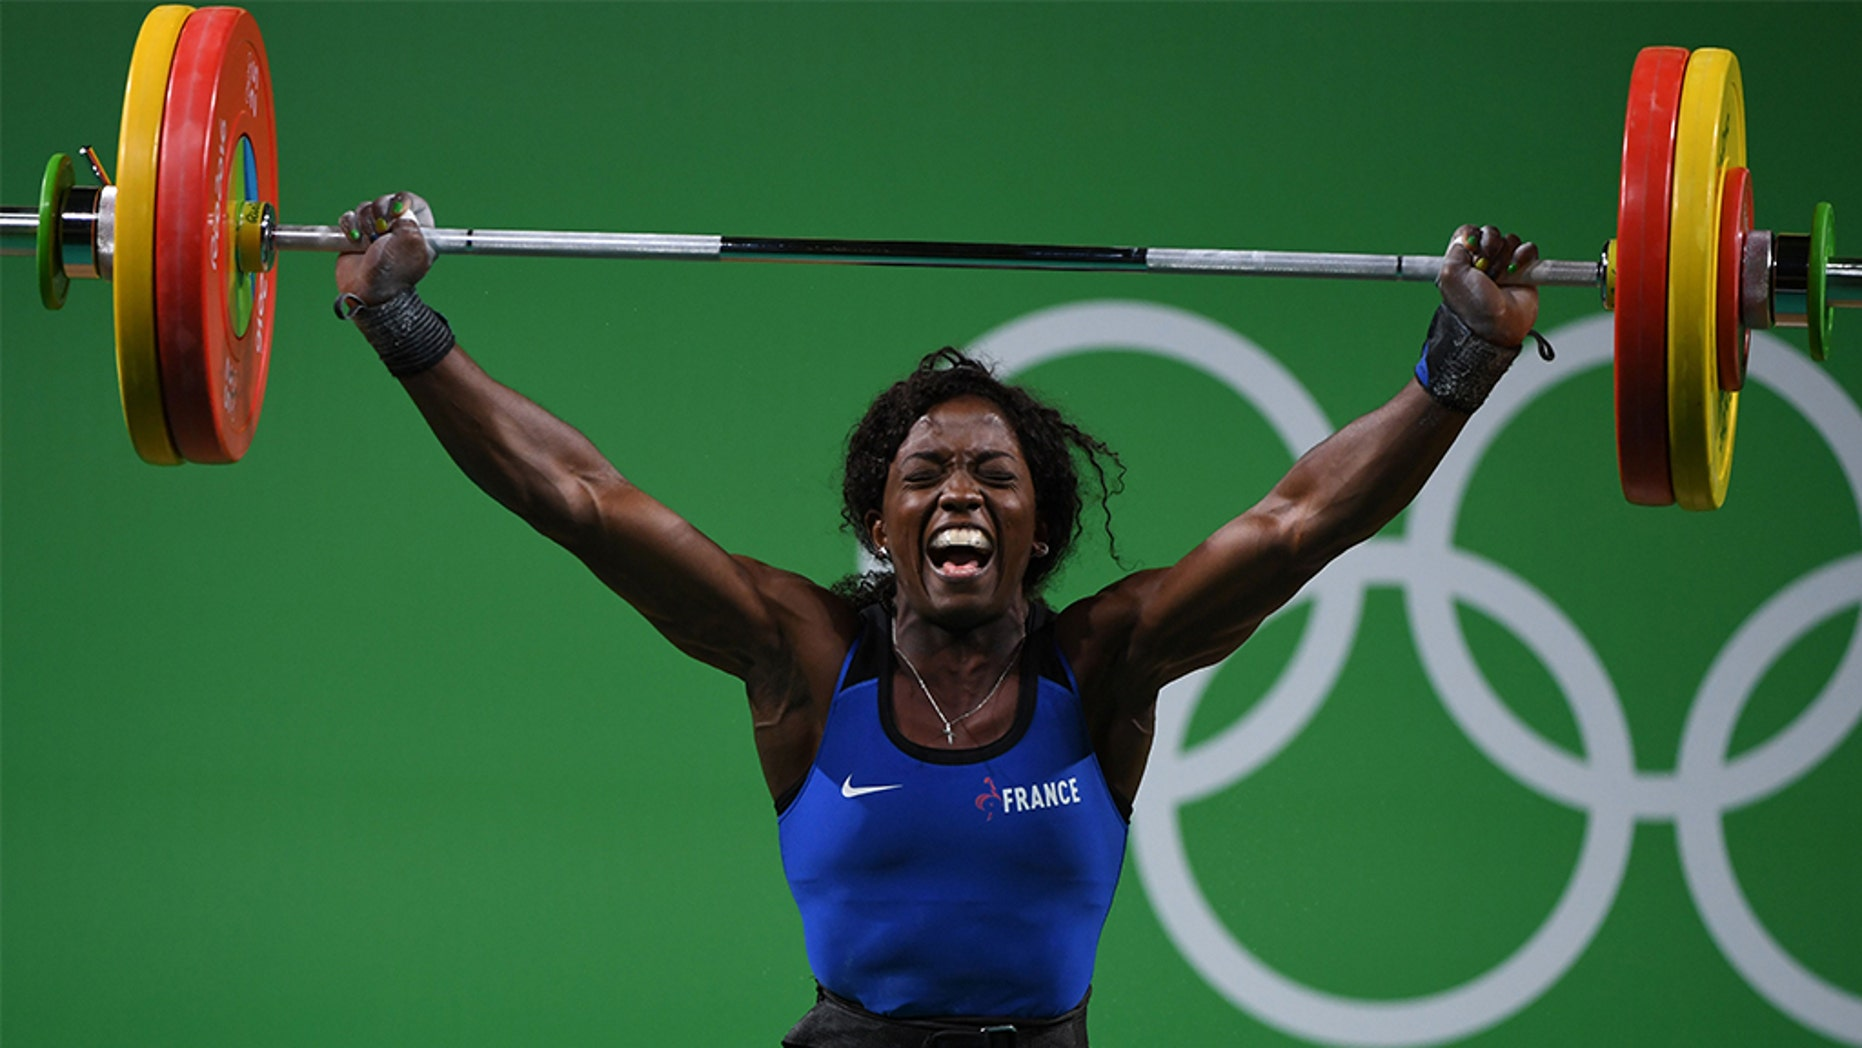 b8ae867d3a3f France s Gaelle Verlaine Nayo Ketchanke reacts during the women s  weightlifting 75kg event during the Rio 2016